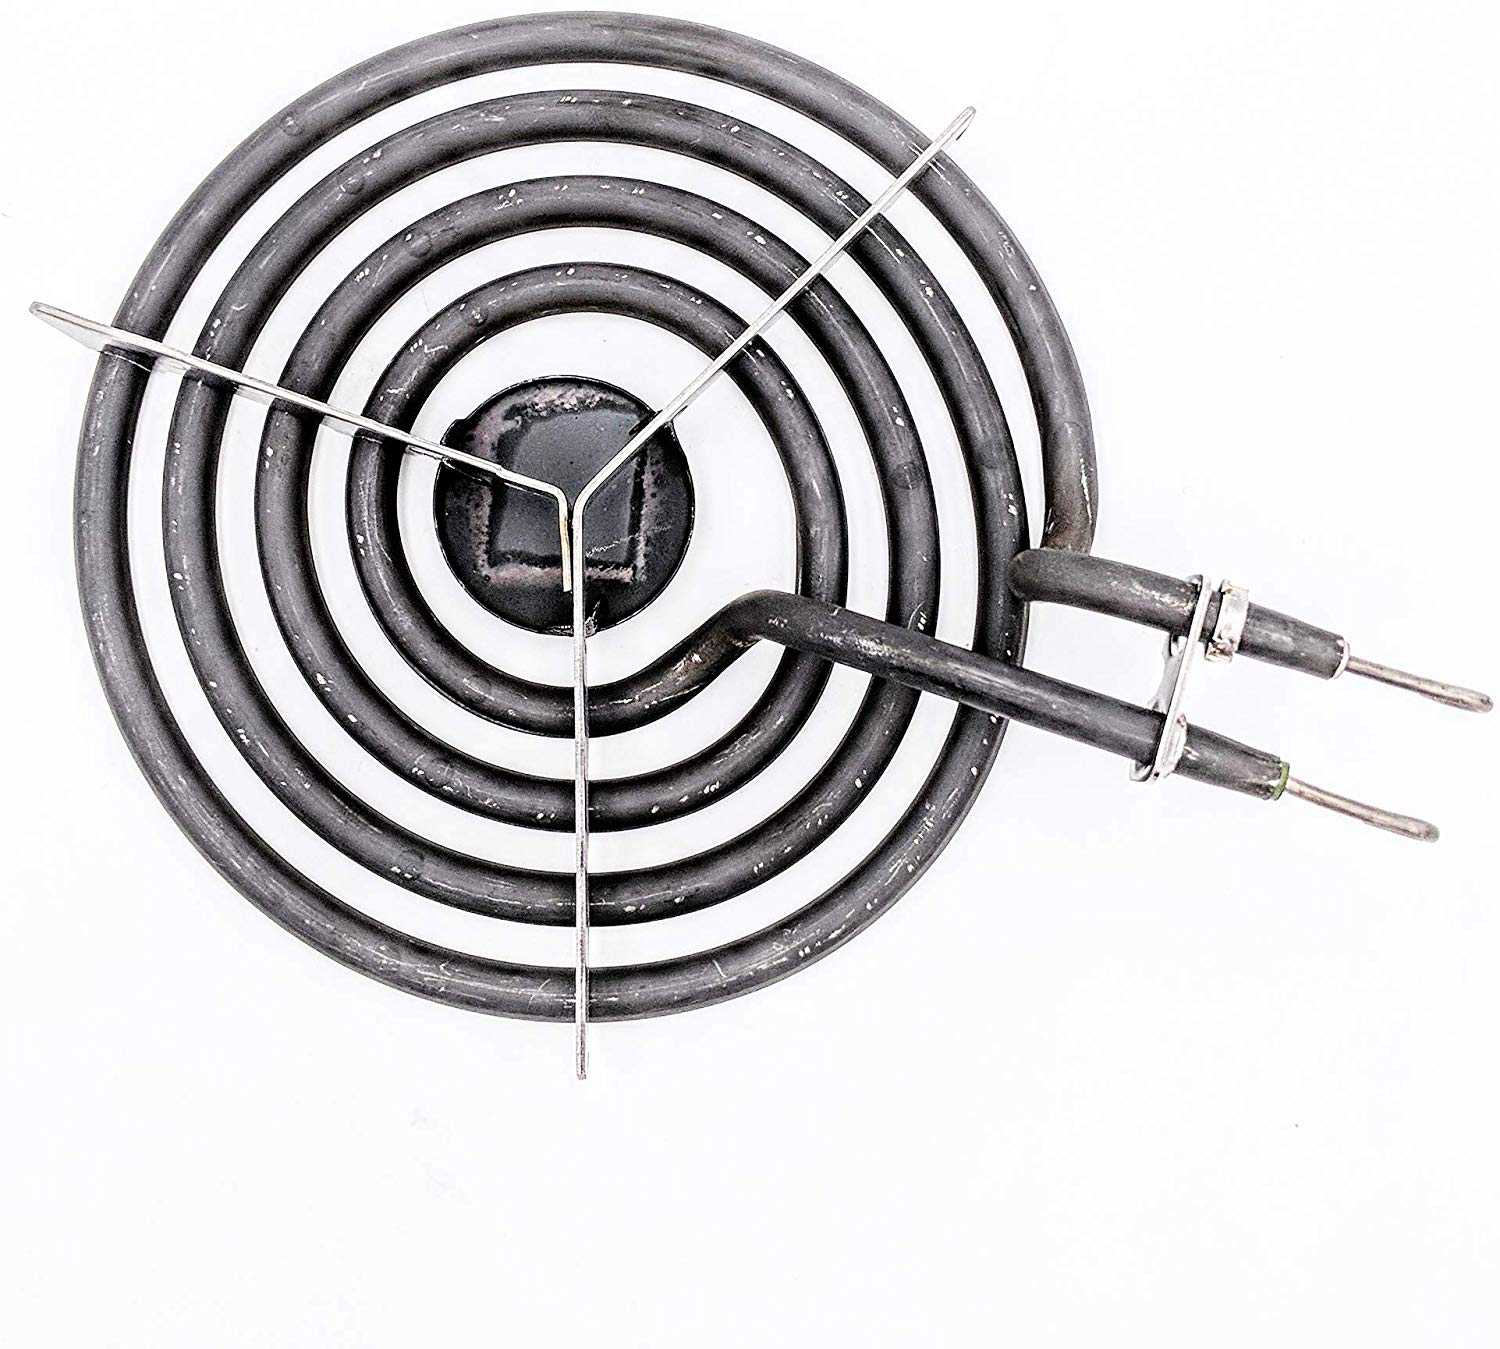 Kenmore / Sears 790.94038703 Small Surface Burner Element Replacement